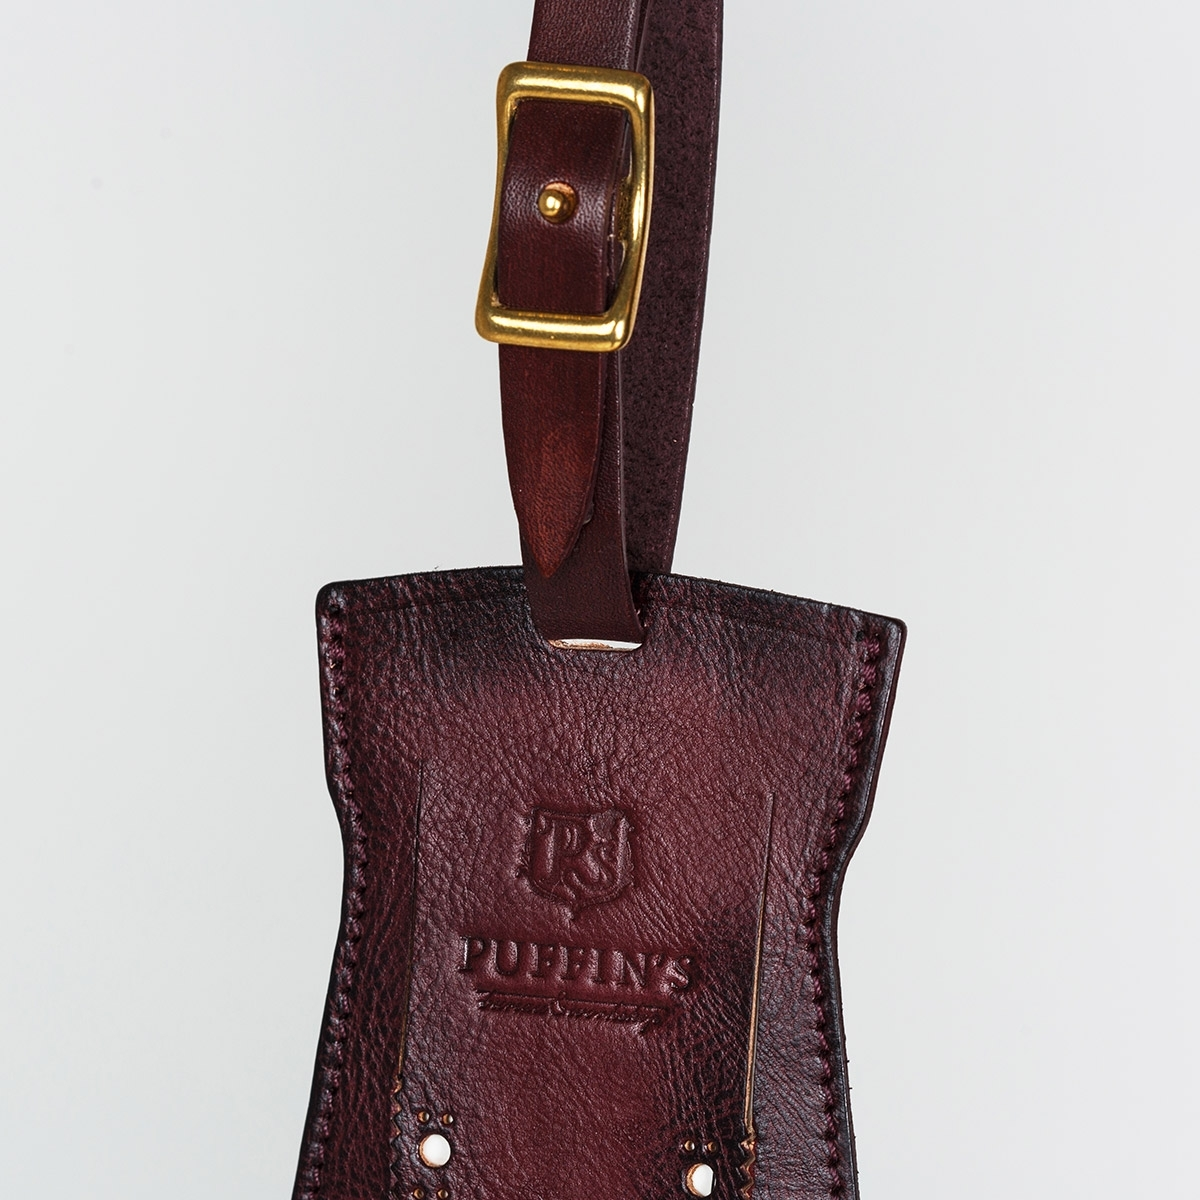 Luggage tag TAVARUA personalized with patina bordeaux